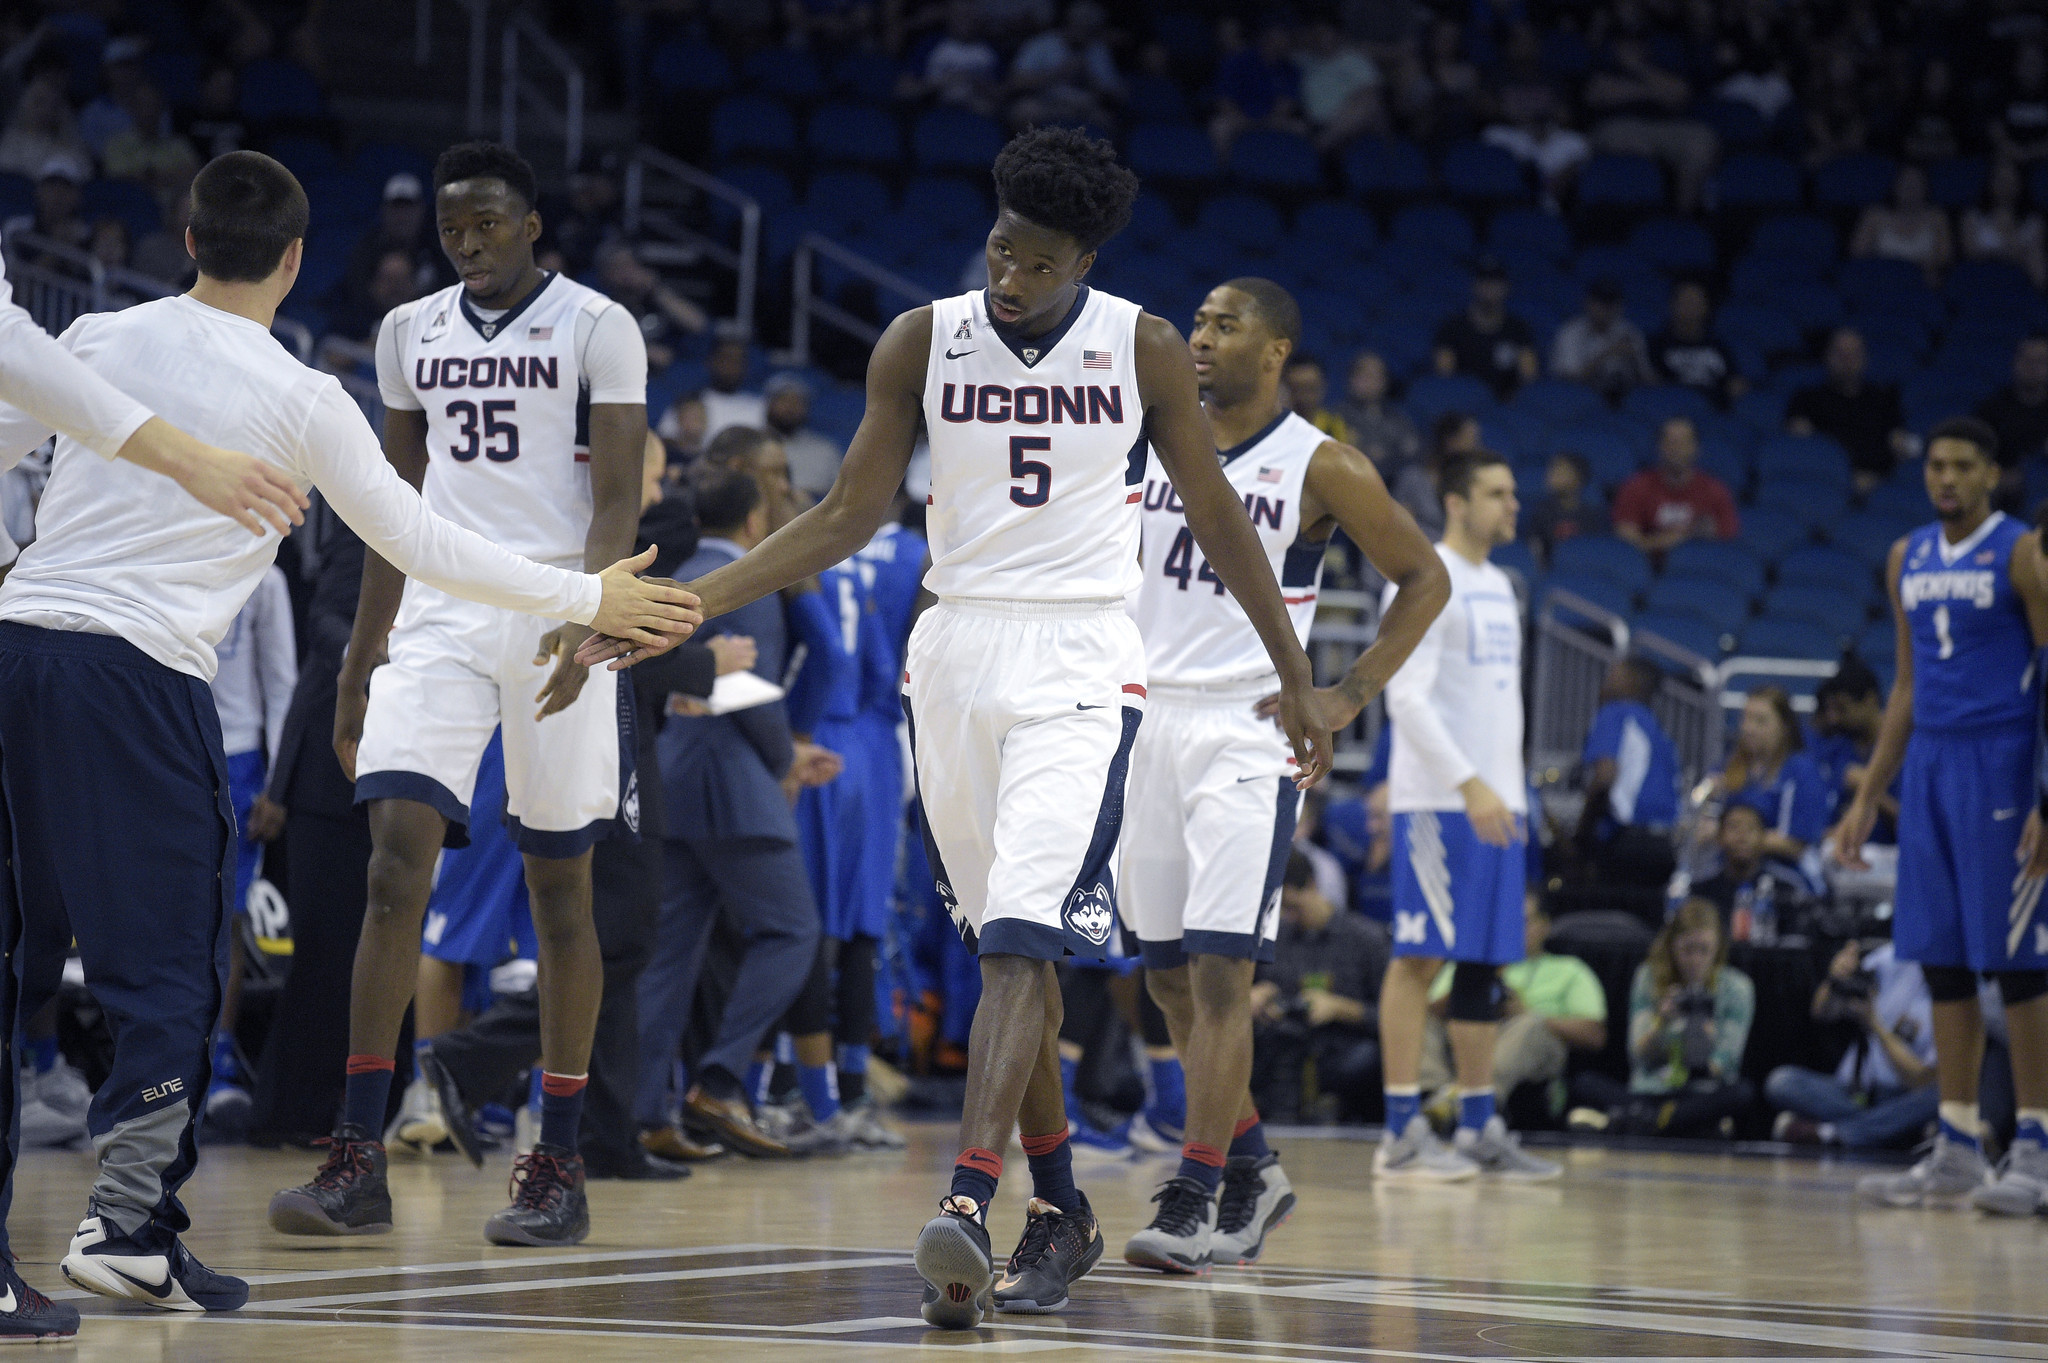 Pictures: UConn Players In The NBA Draft - Hartford Courant